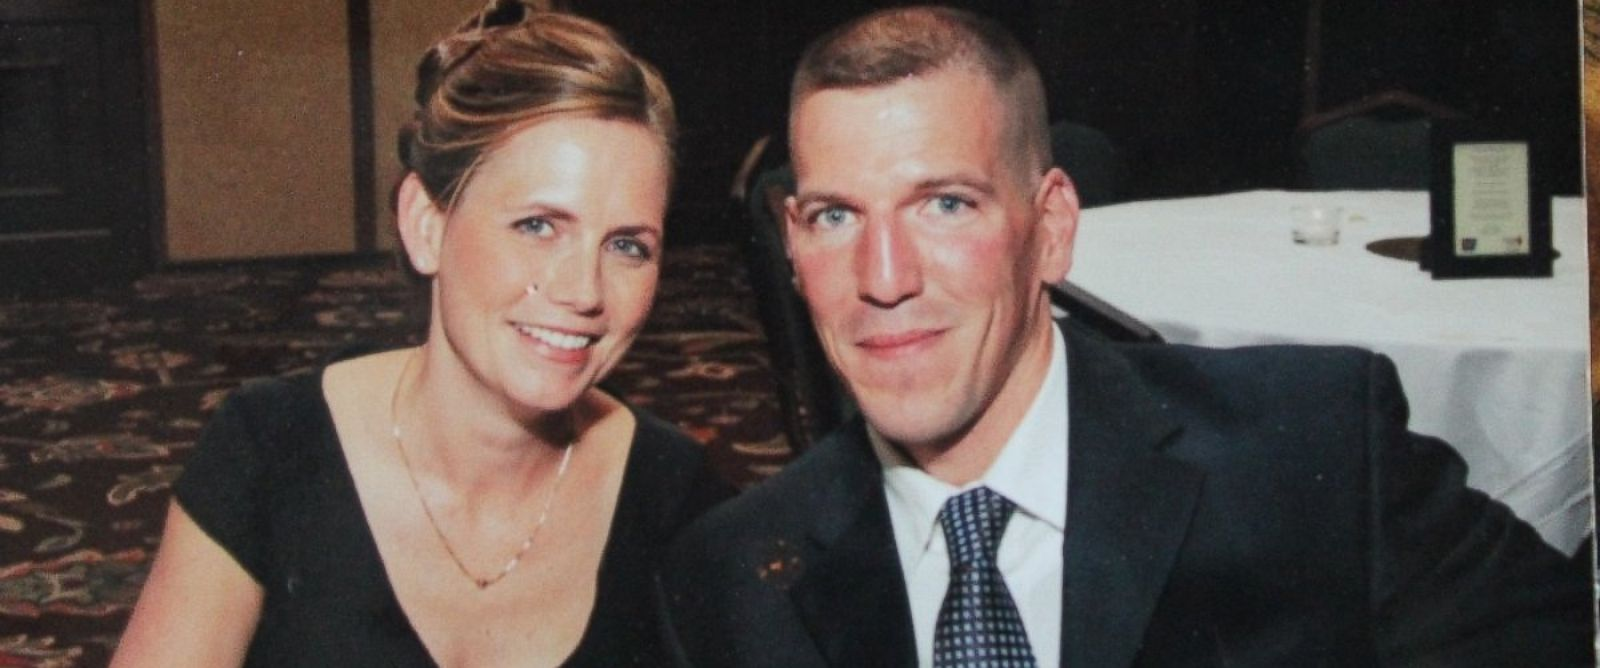 PHOTO: Beth ORourke is seen in this photo with her husband, Brendan ORourke, courtesy of GoFundMe.